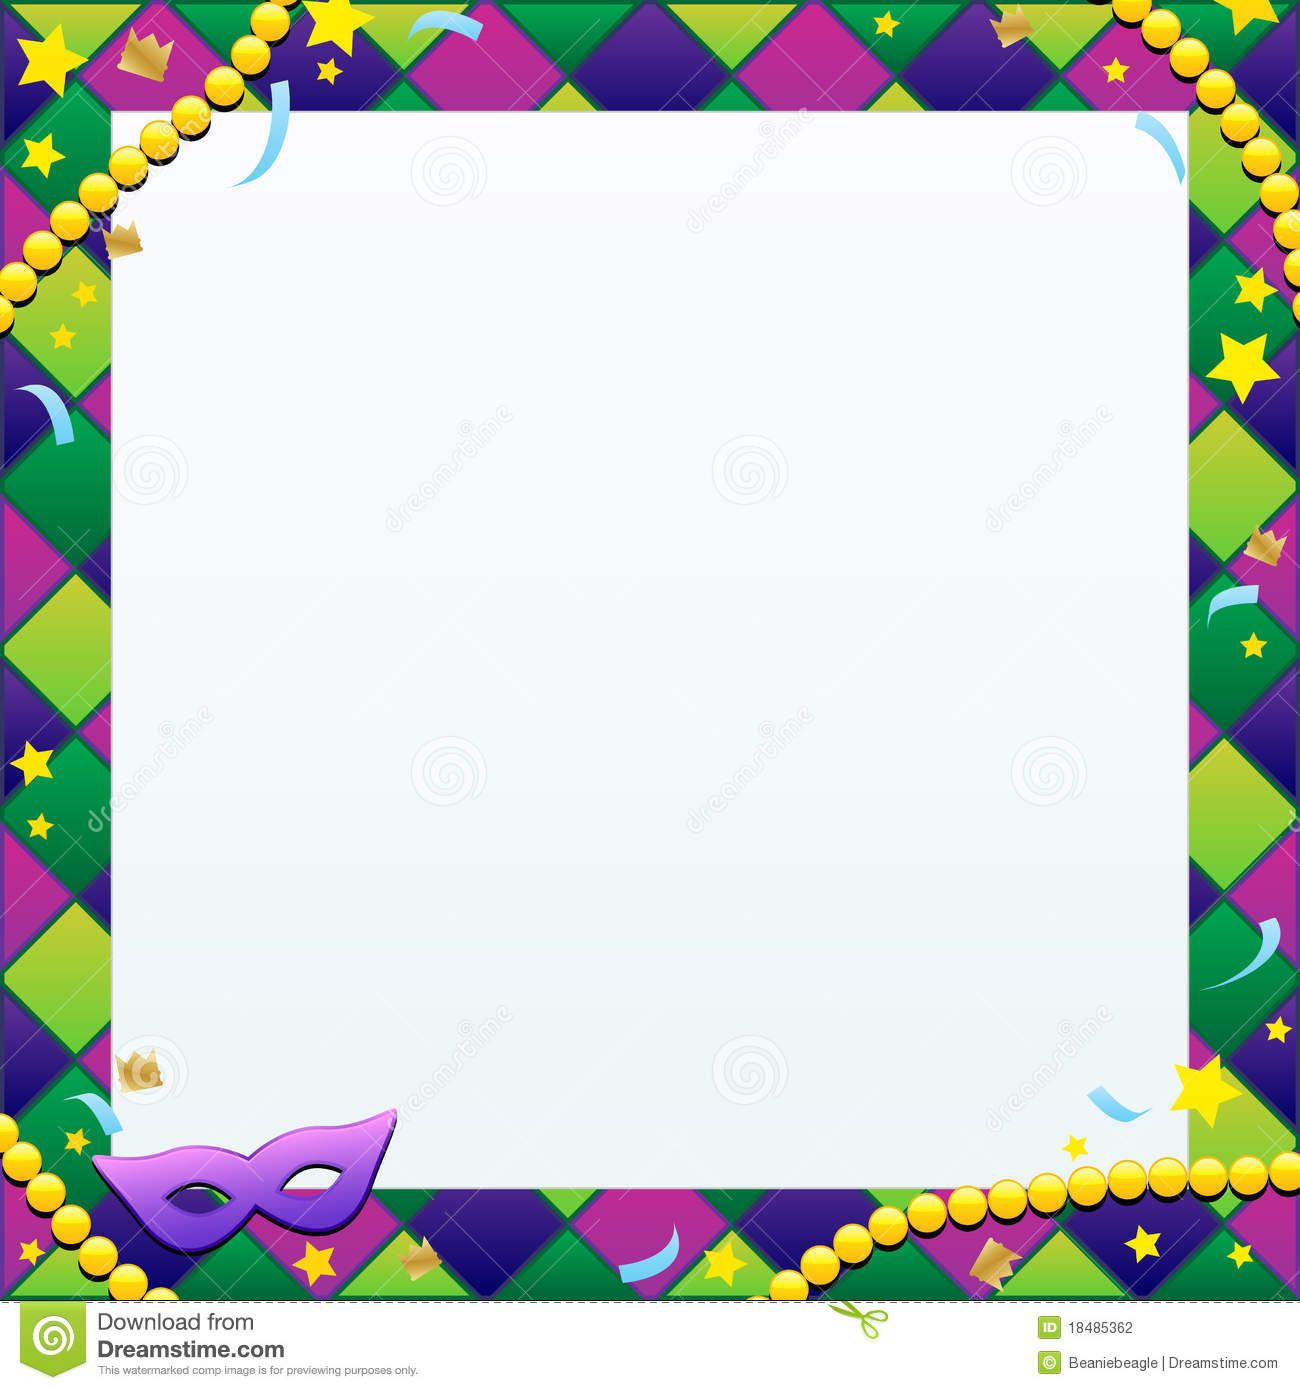 Mardi gras framesfree clipart colors svg transparent stock mardi gras borders backgrounds | An illustration of a Mardi ... svg transparent stock